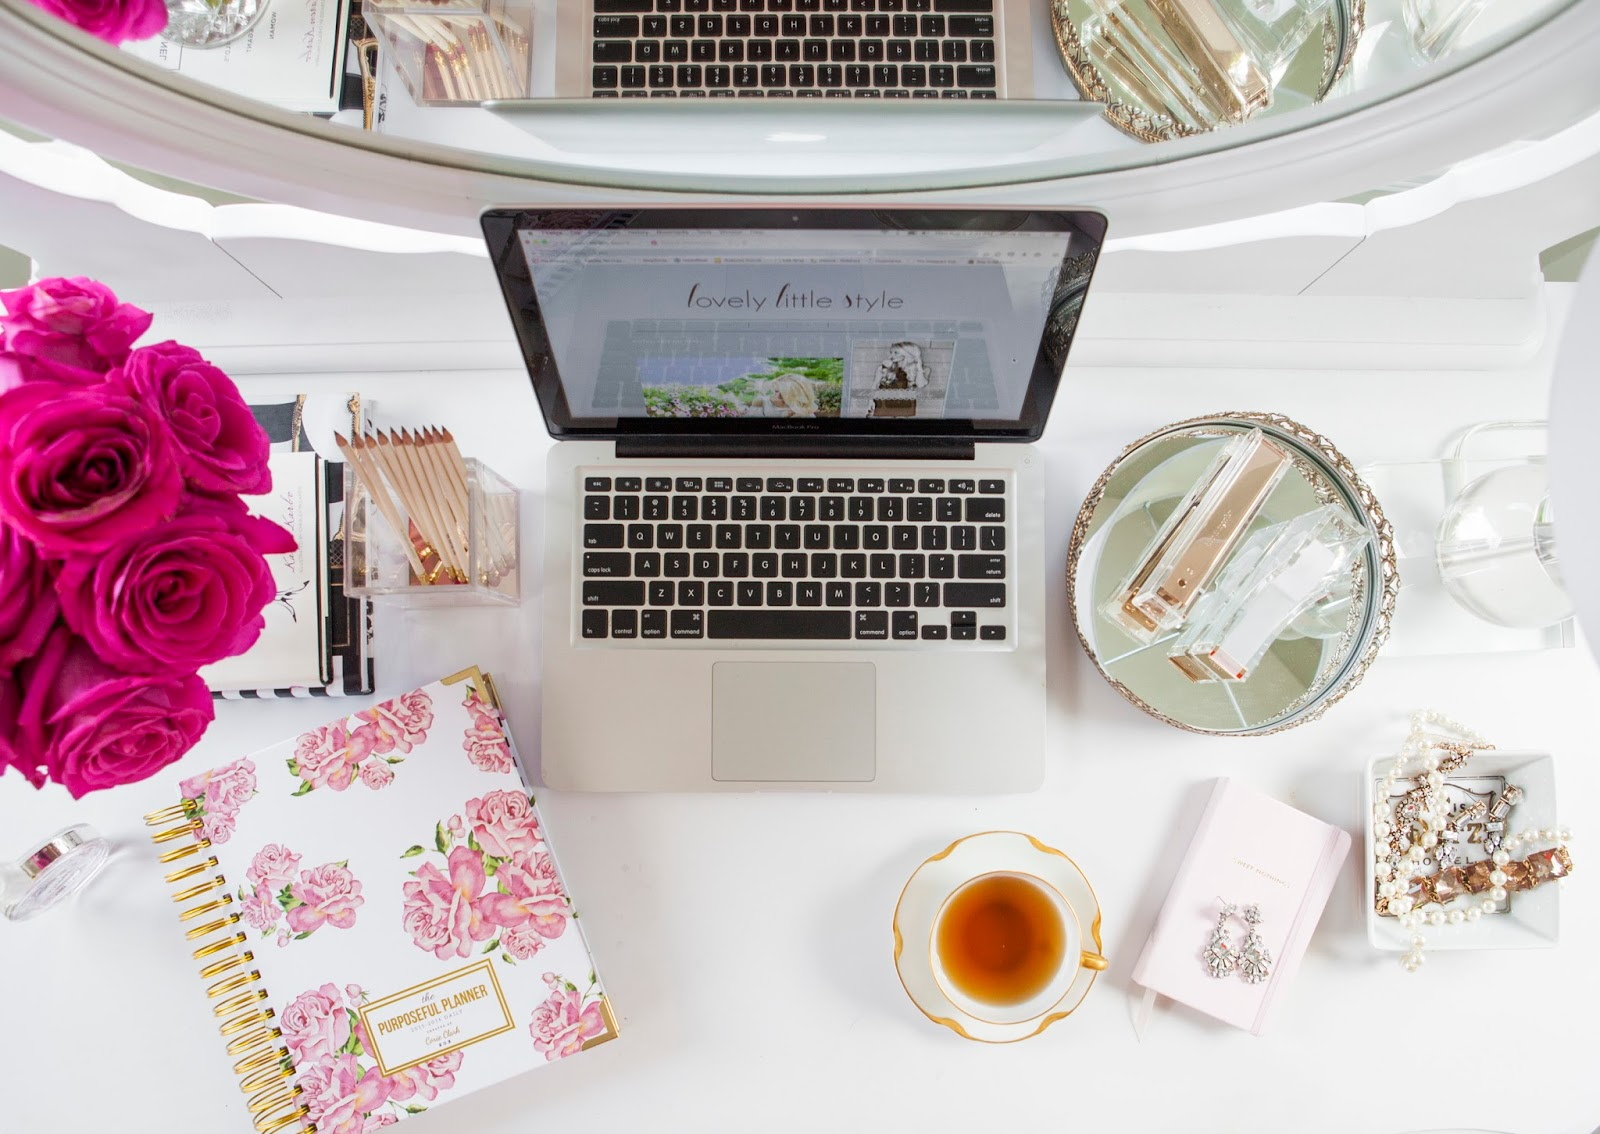 What\'s On My Desk - Welcome to Olivia Rink